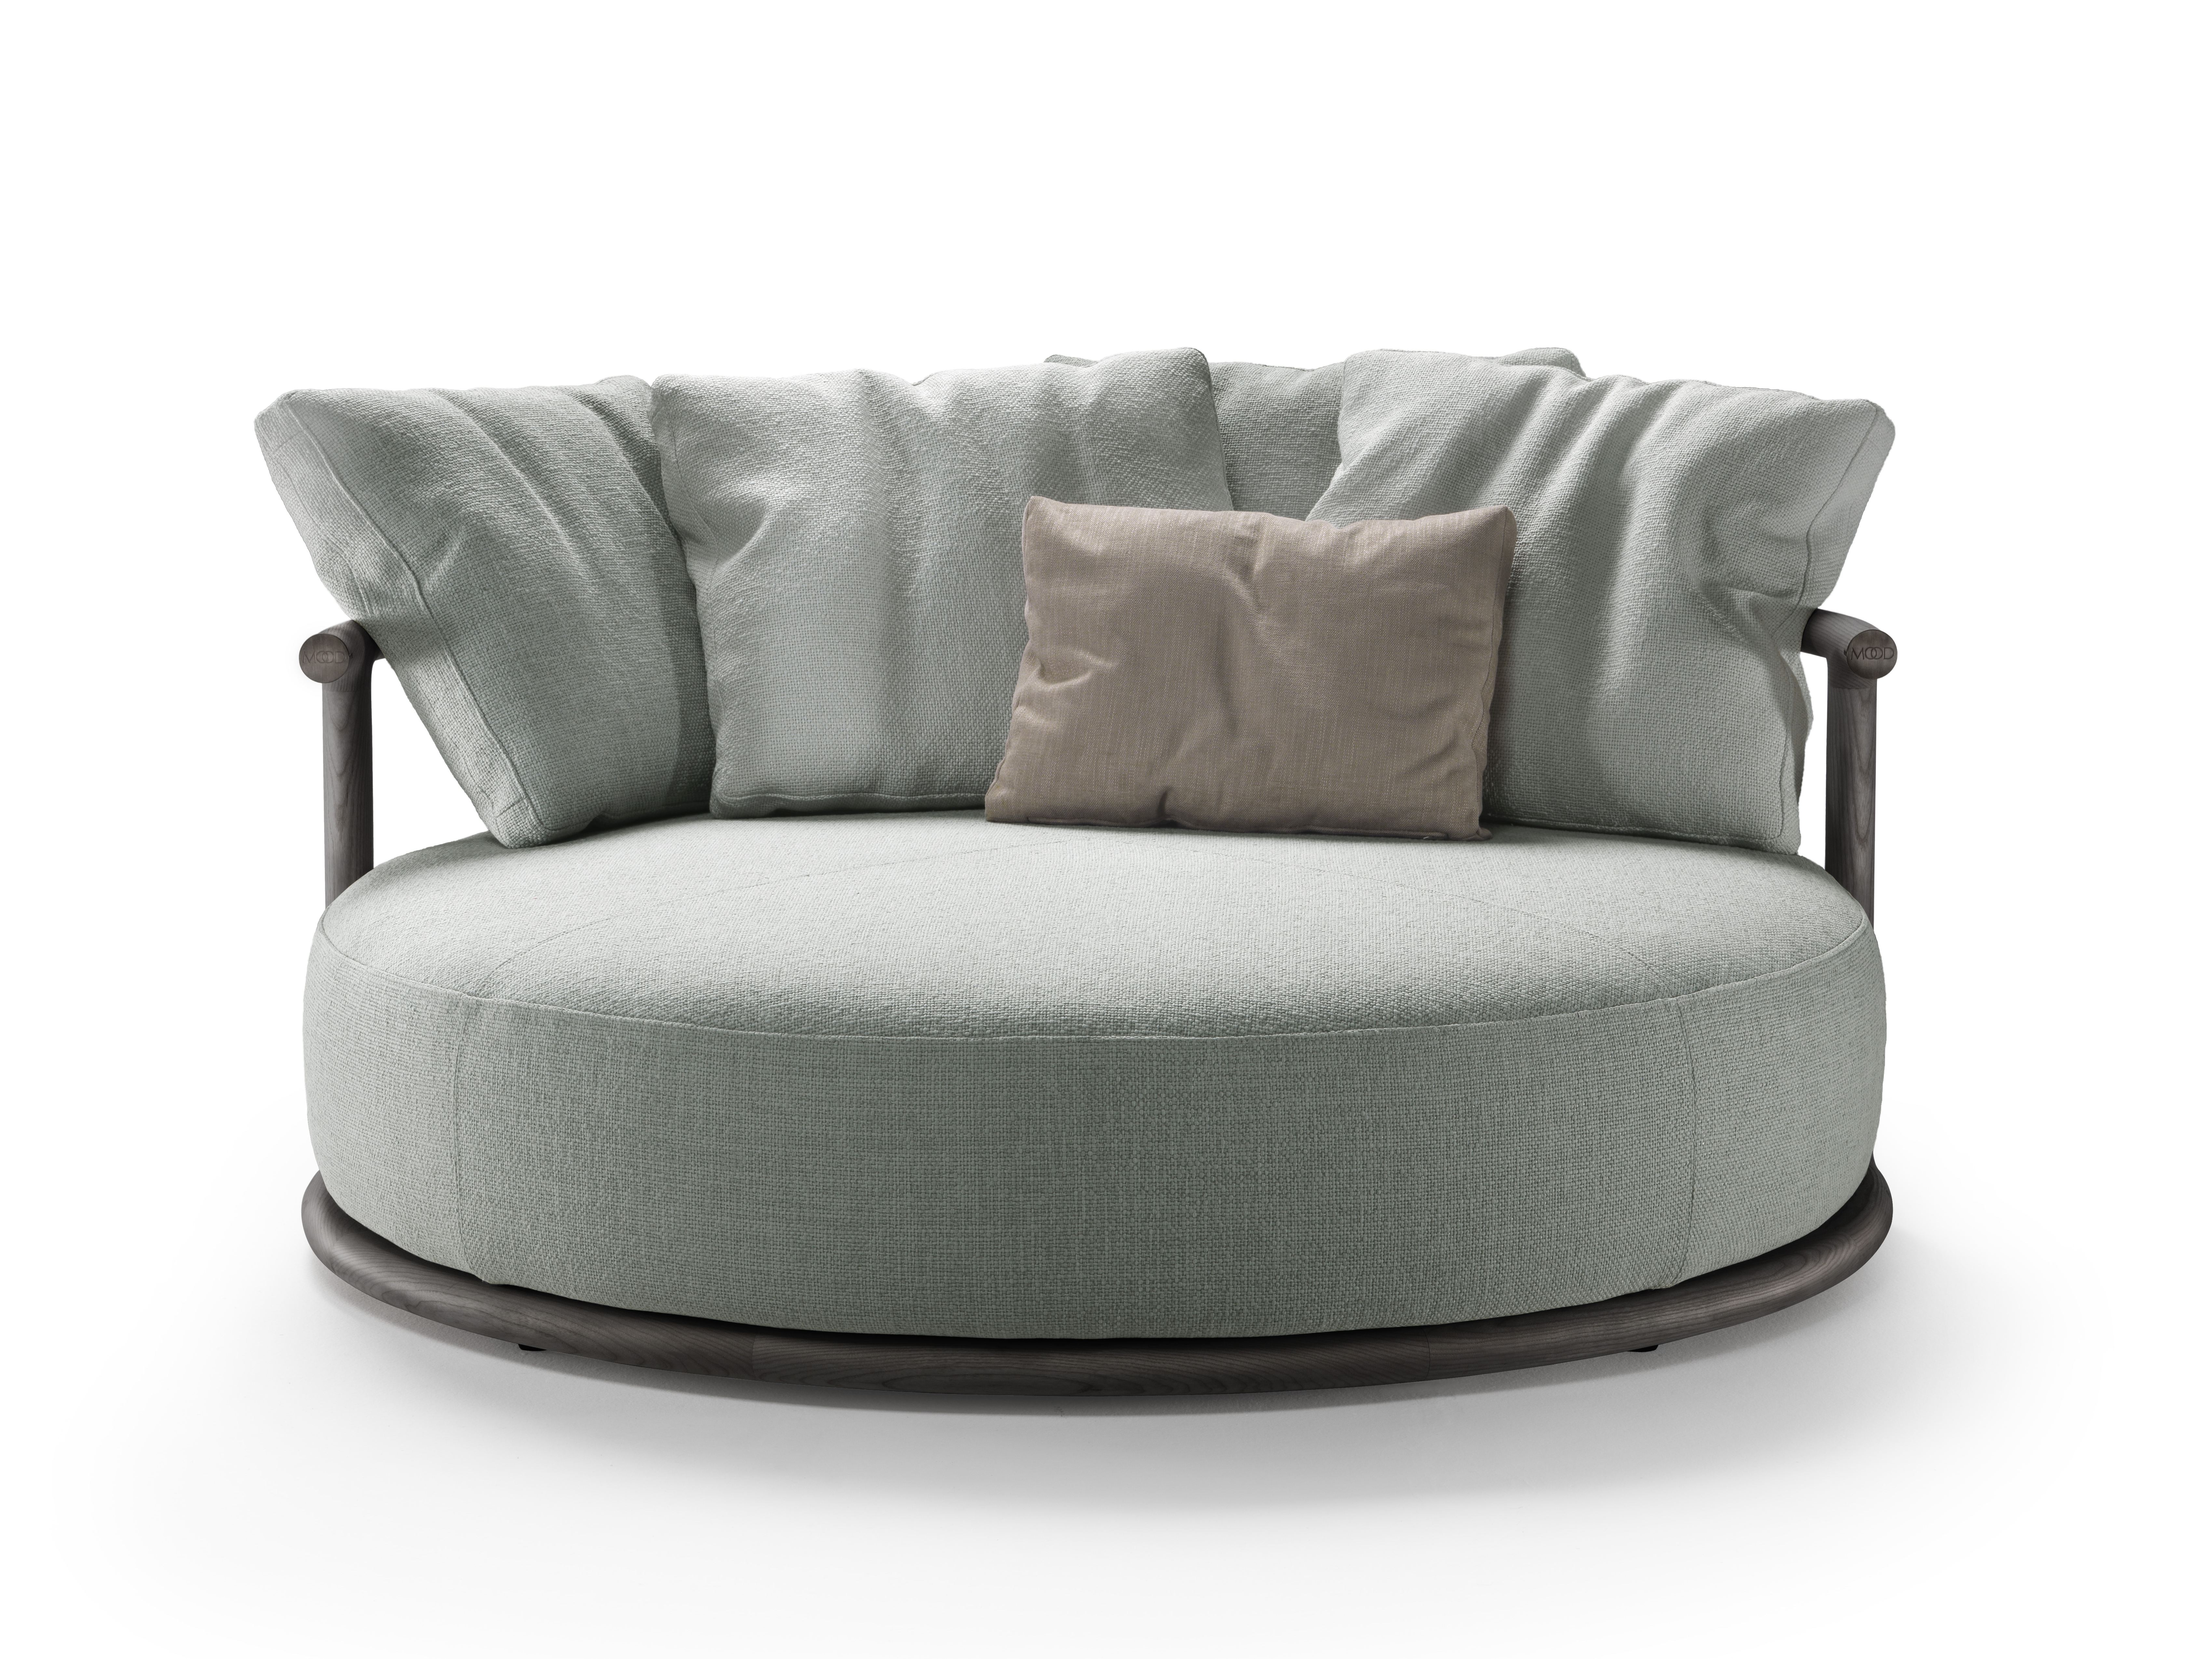 icaro  curved sofa icaro collection by mood by flexform design  - icaro  curved sofa icaro collection by mood by flexform design robertolazzeroni